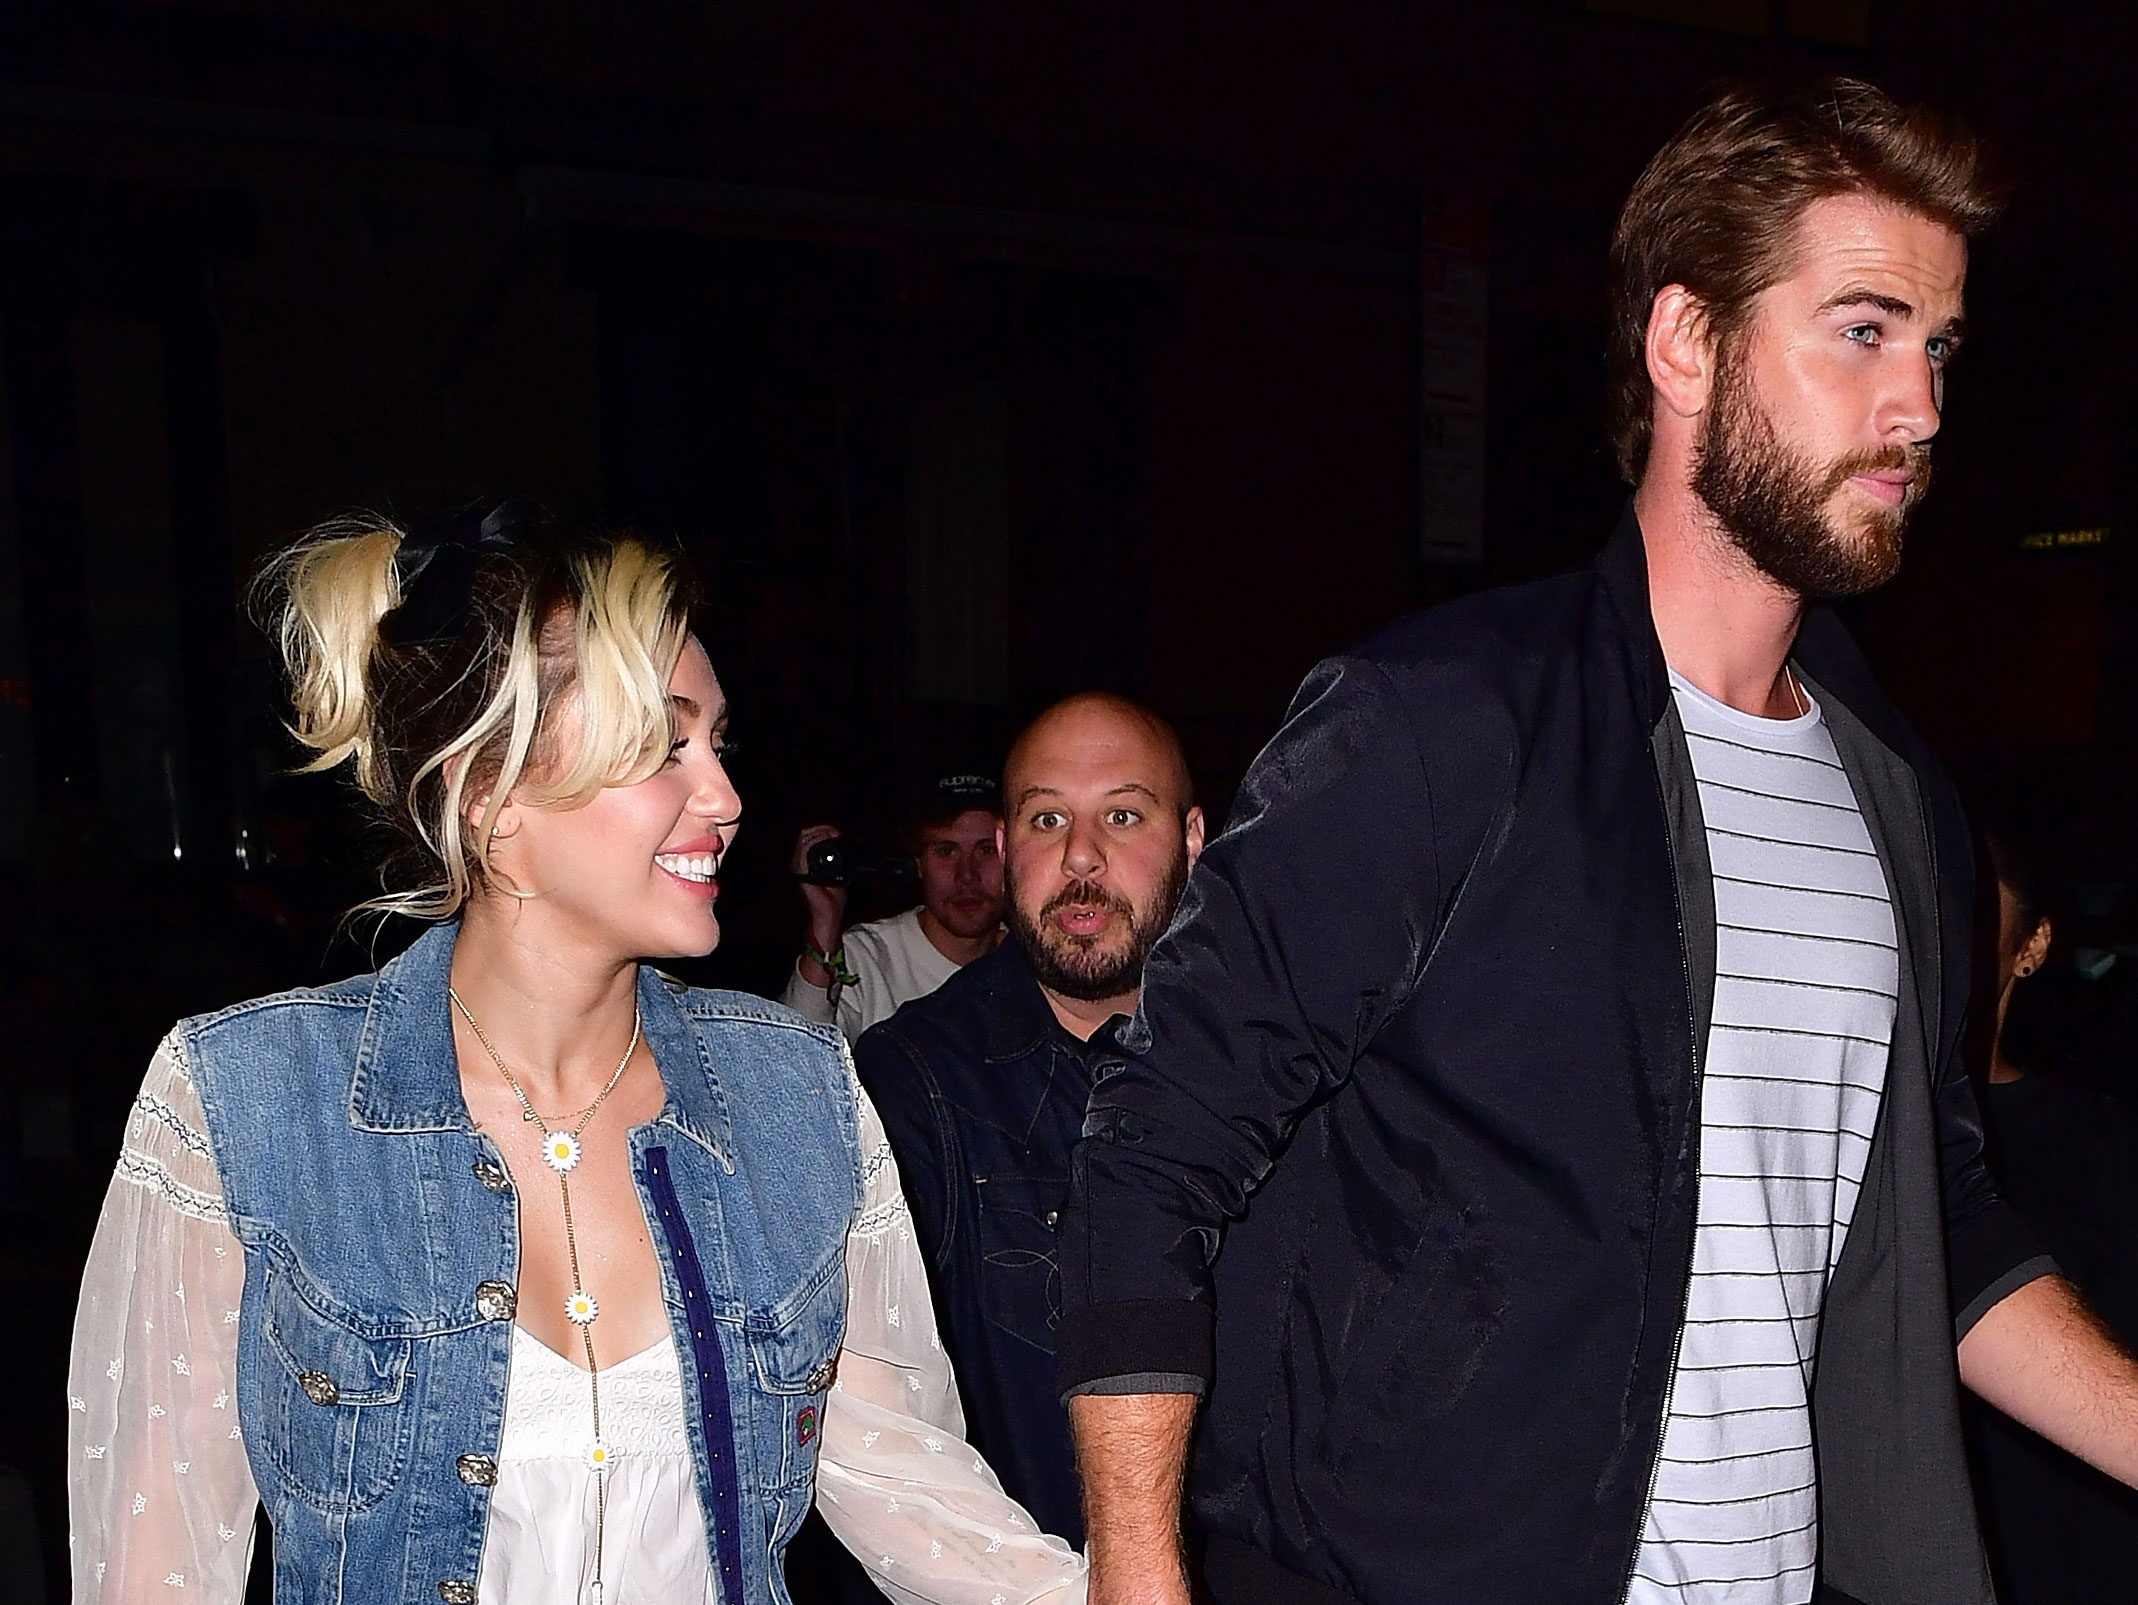 Miley & Liam Are Stronger Than Ever - Here's How She Saved Their Relationship